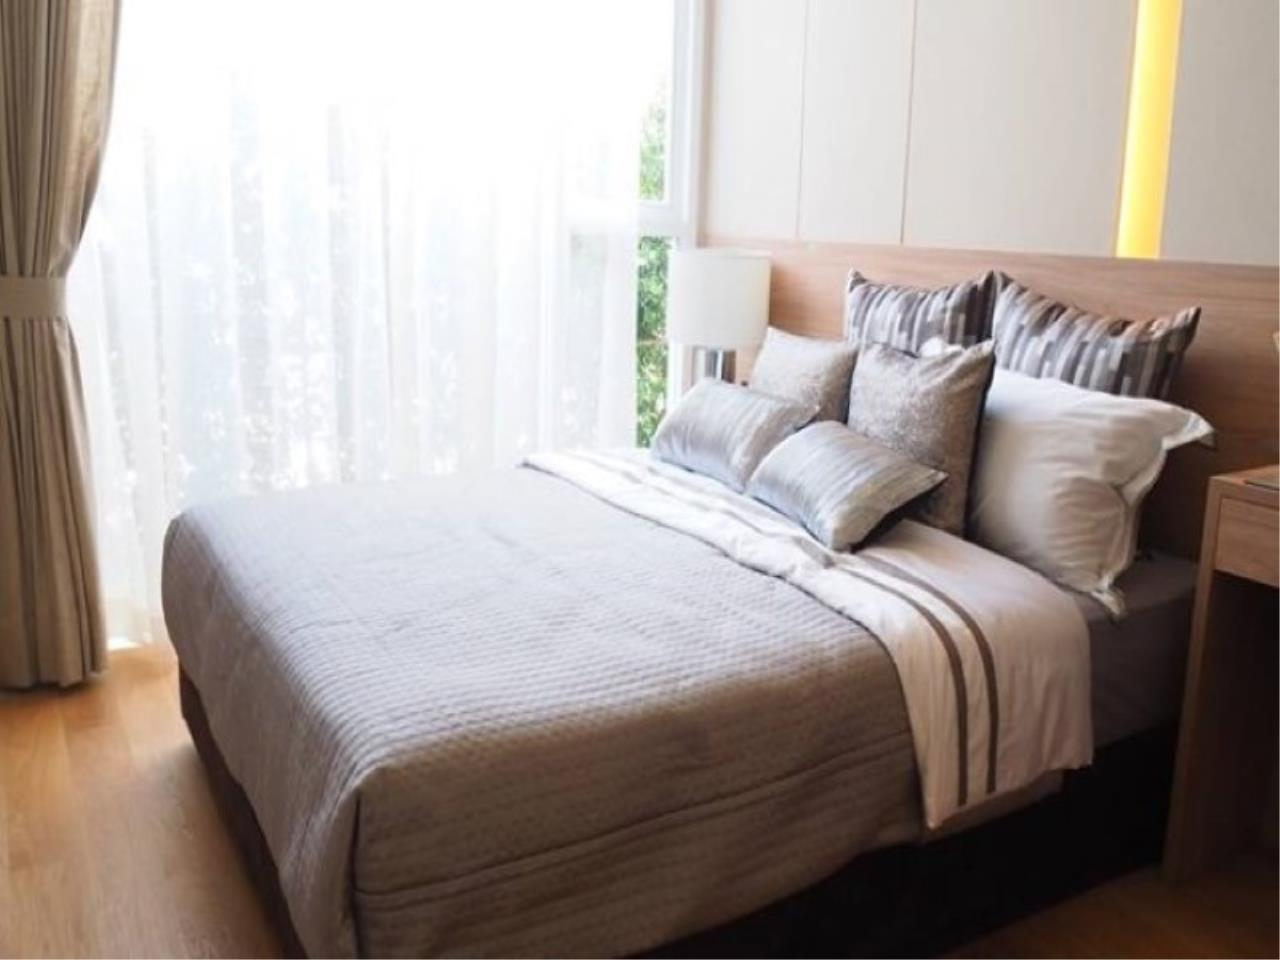 Century21 Skylux Agency's Siamese Exclusive Sukhumvit 42 / Condo For Sale / 1 Bedroom / 33.67 SQM / BTS Ekkamai / Bangkok 5